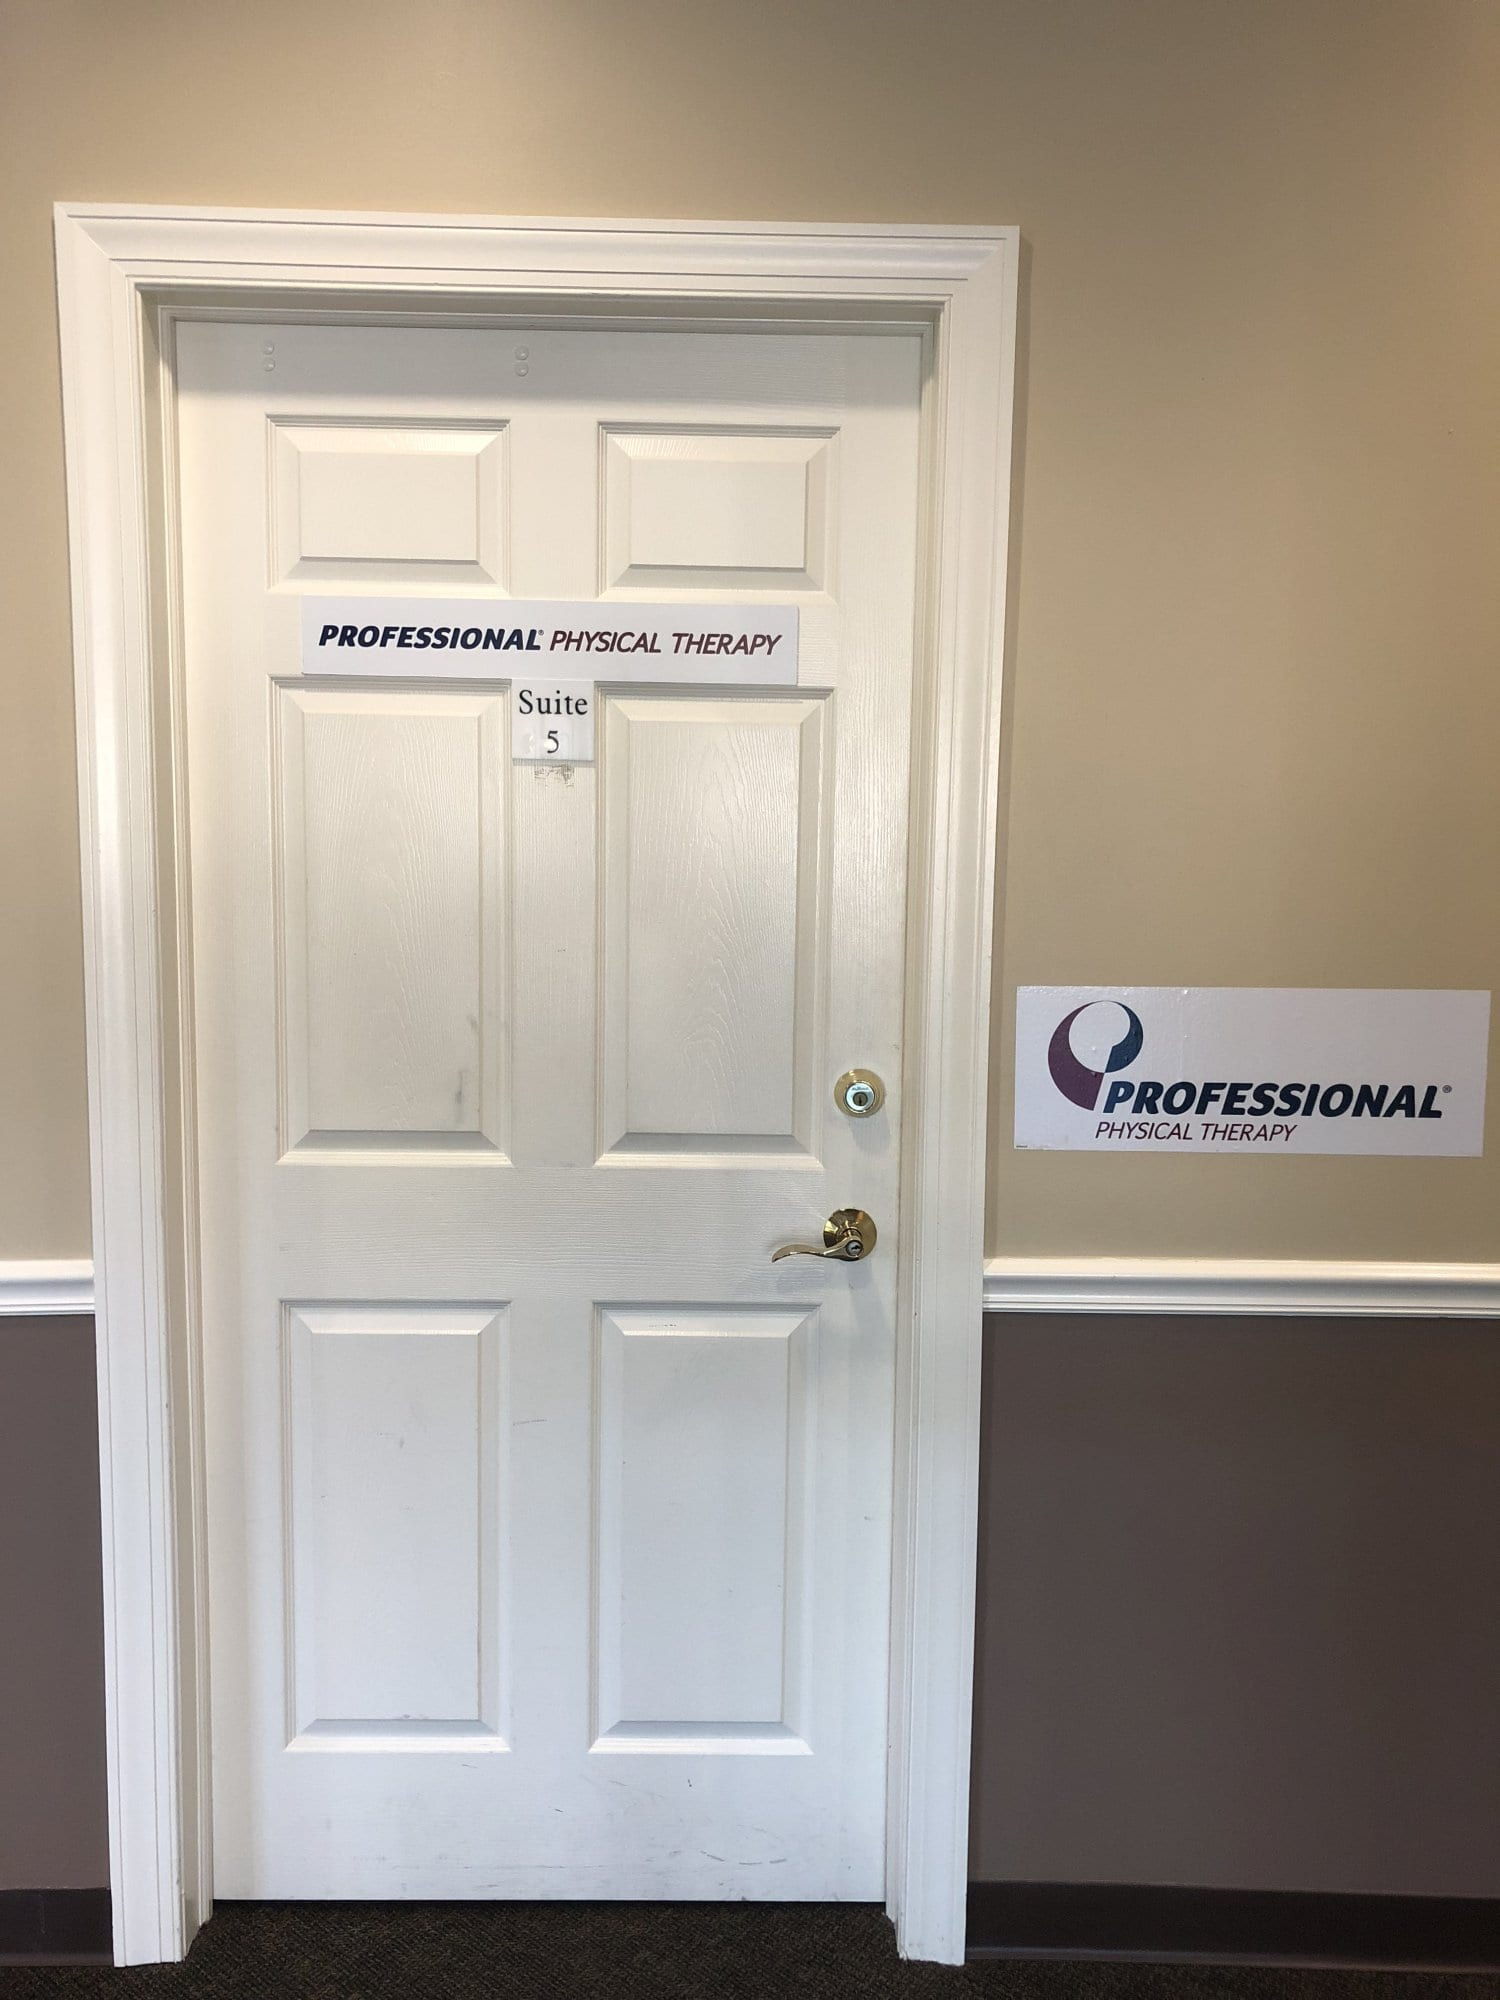 An image of the door to our physical therapy clinic in Hazlet, New Jersey.